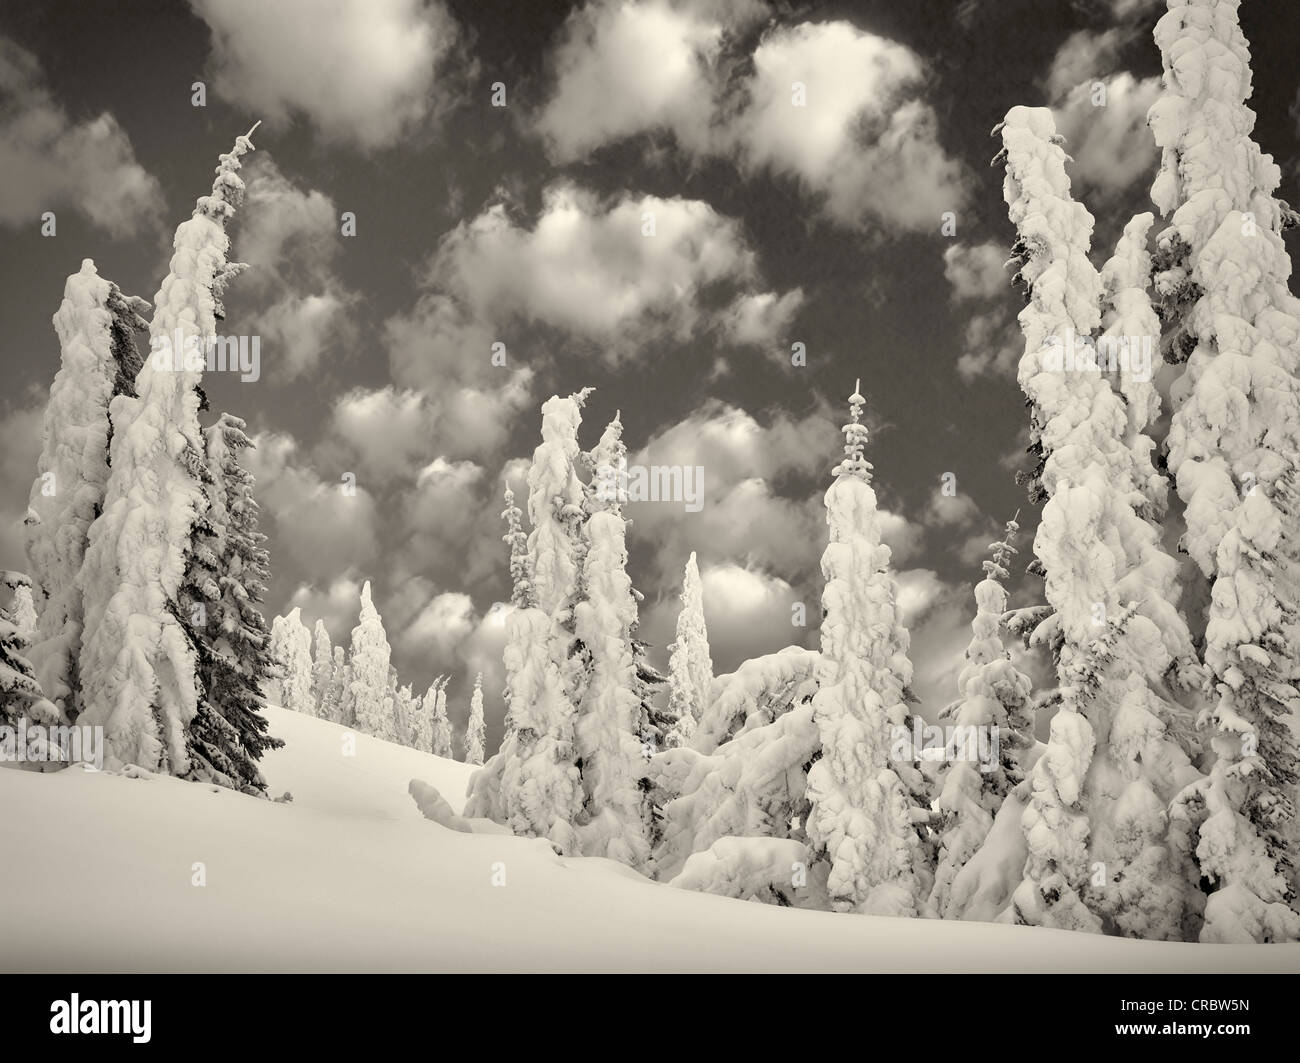 Heavy snow on trees. Mt. Rainier National Park, Washington - Stock Image